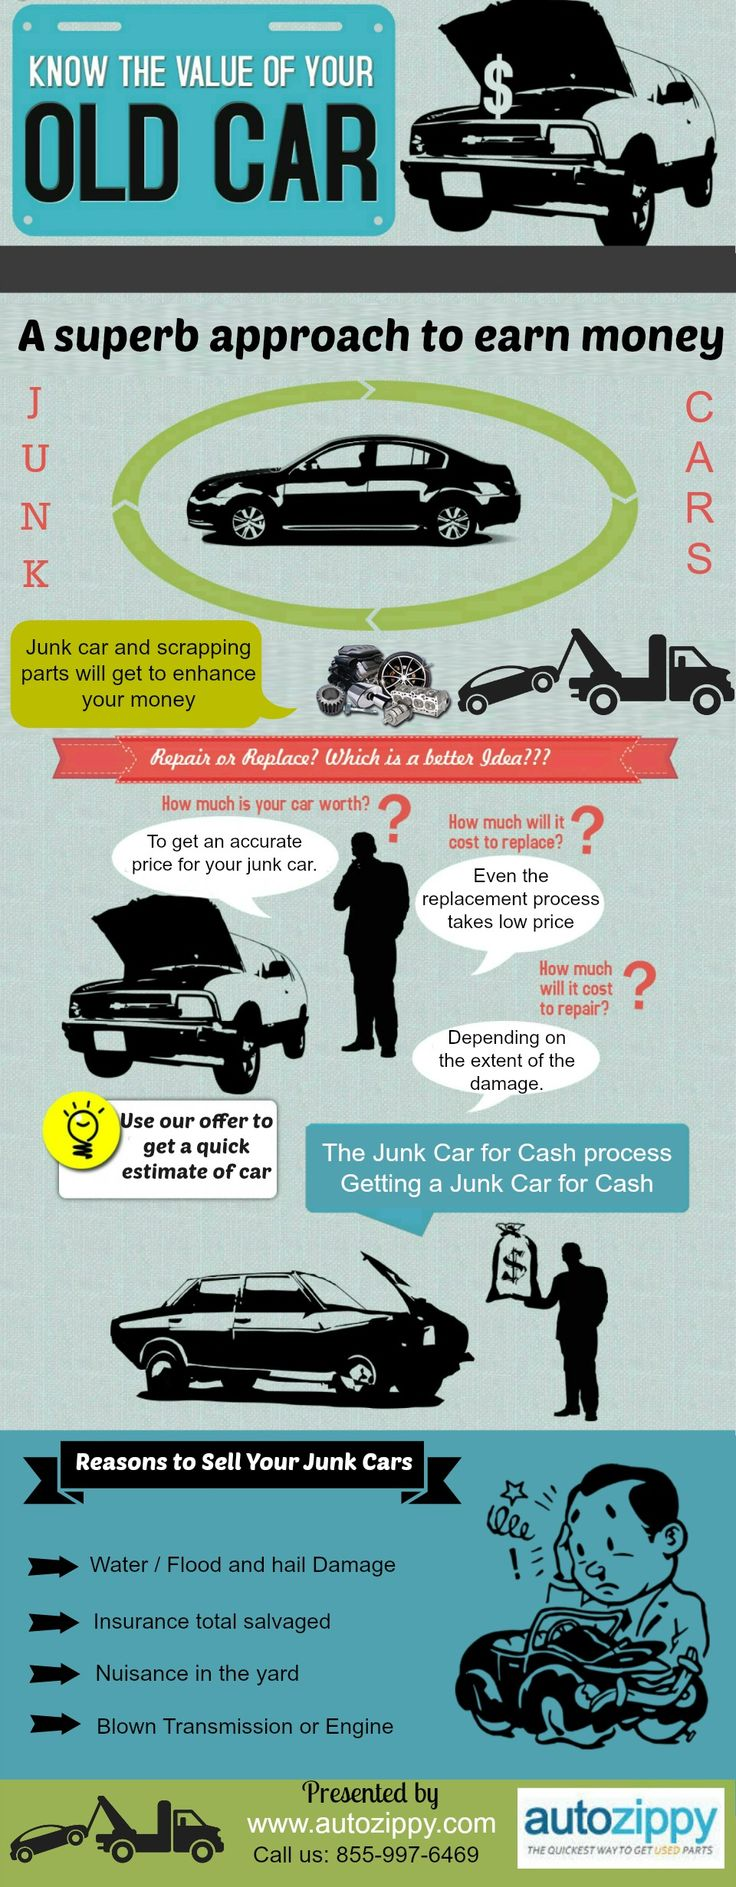 Sell Your Junk Car and Make Money